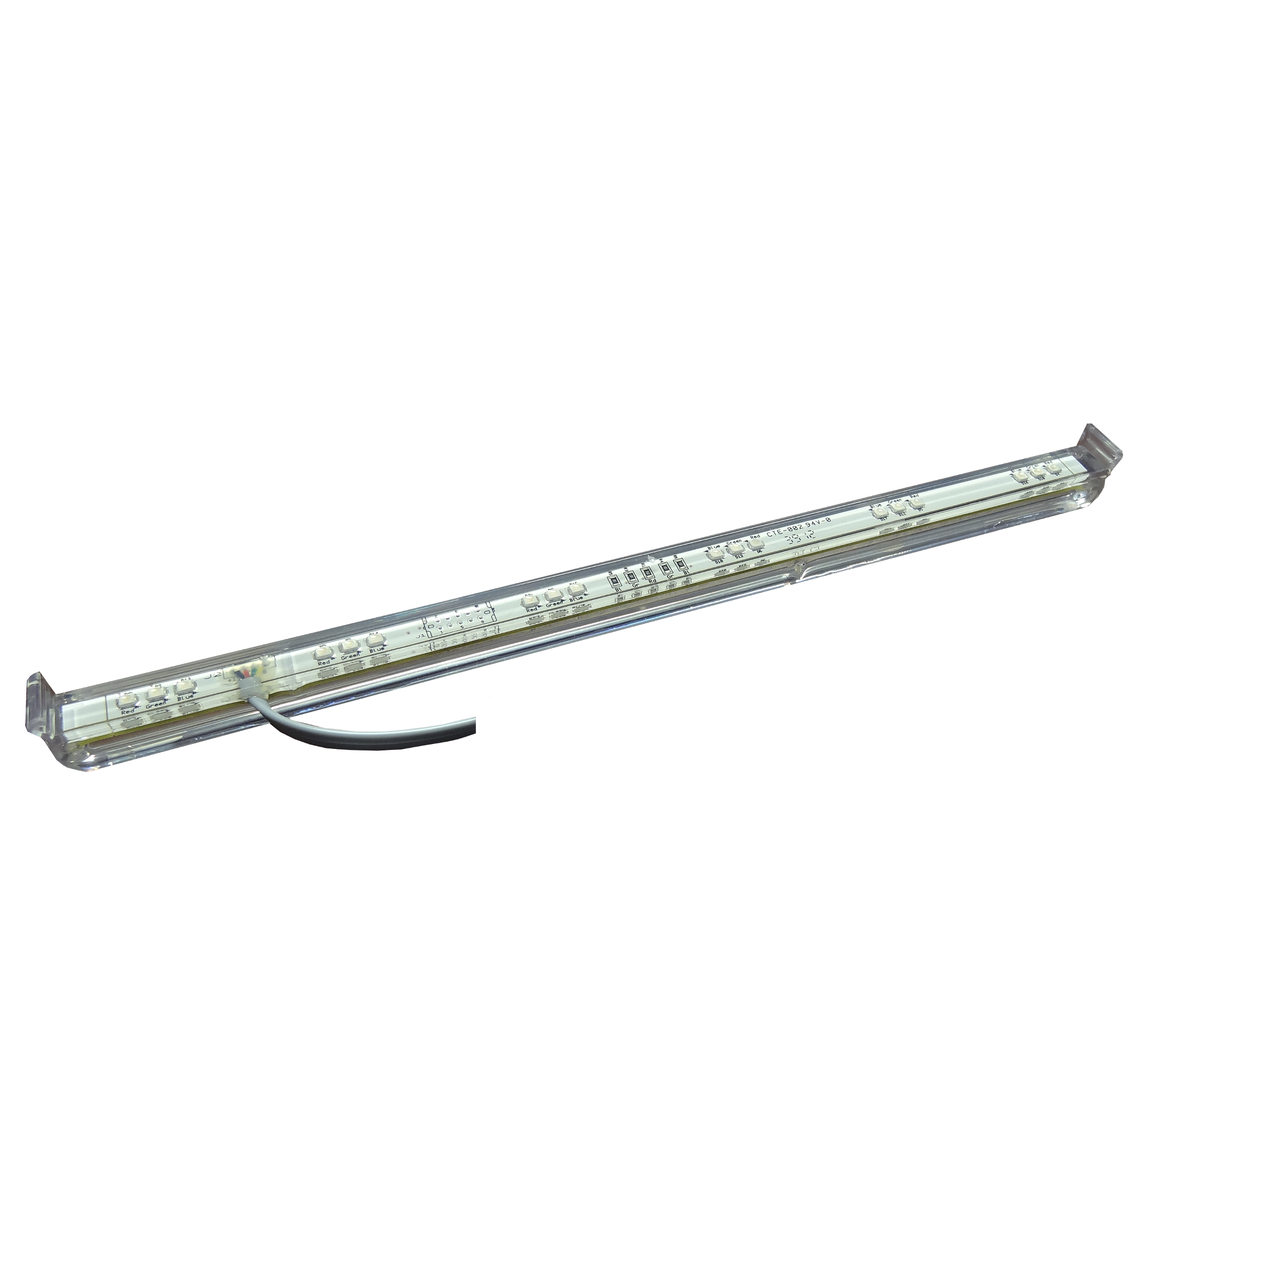 6560-183 Replacement J-400 Jacuzzi® Waterfall Clip on Light - Spa ...